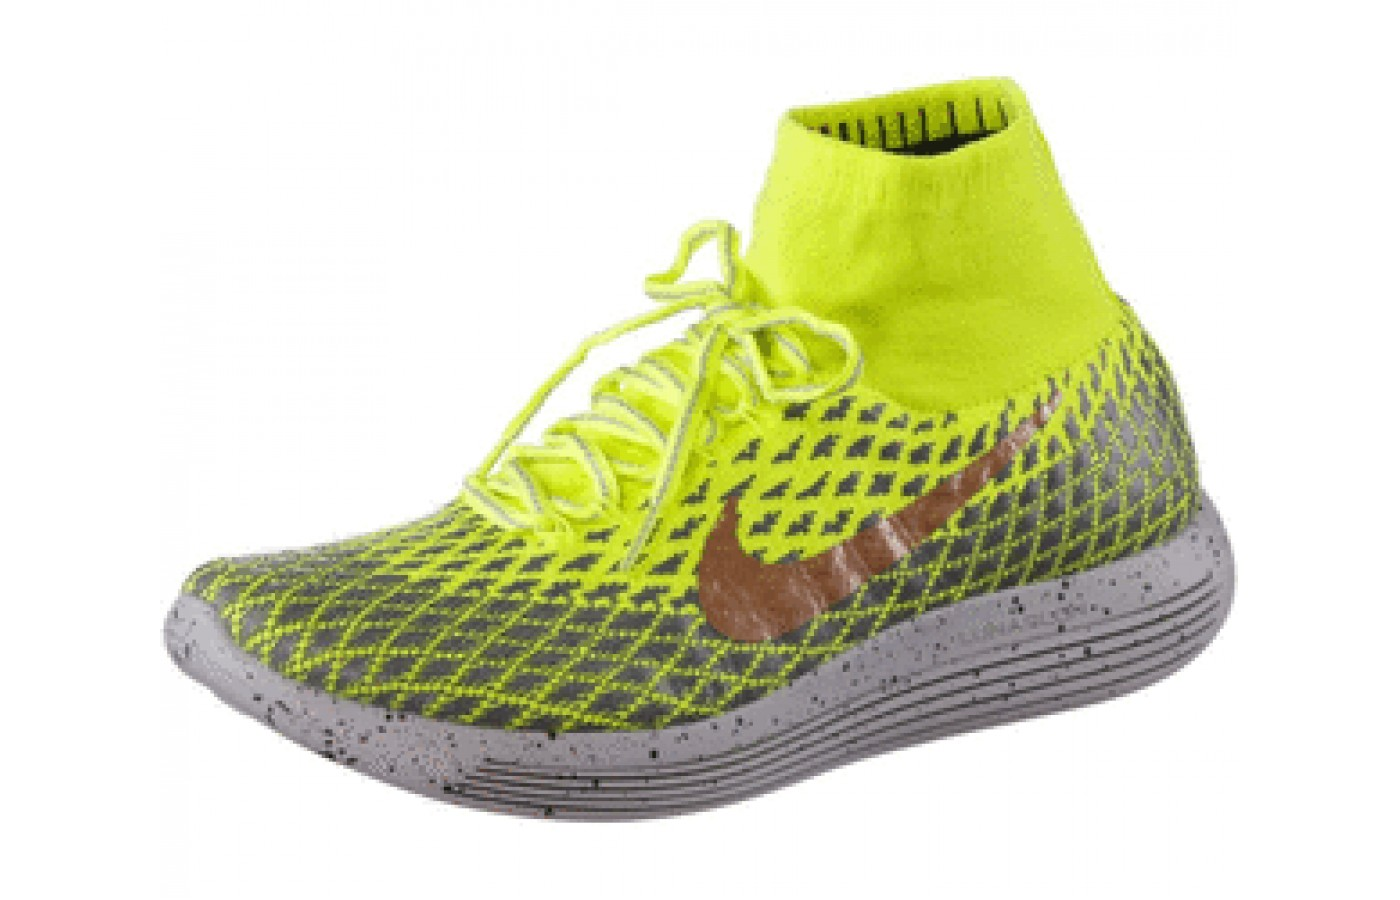 f03343ab0fc Side Angled view of the Nike LunarEpic FlyKnit Shield ...